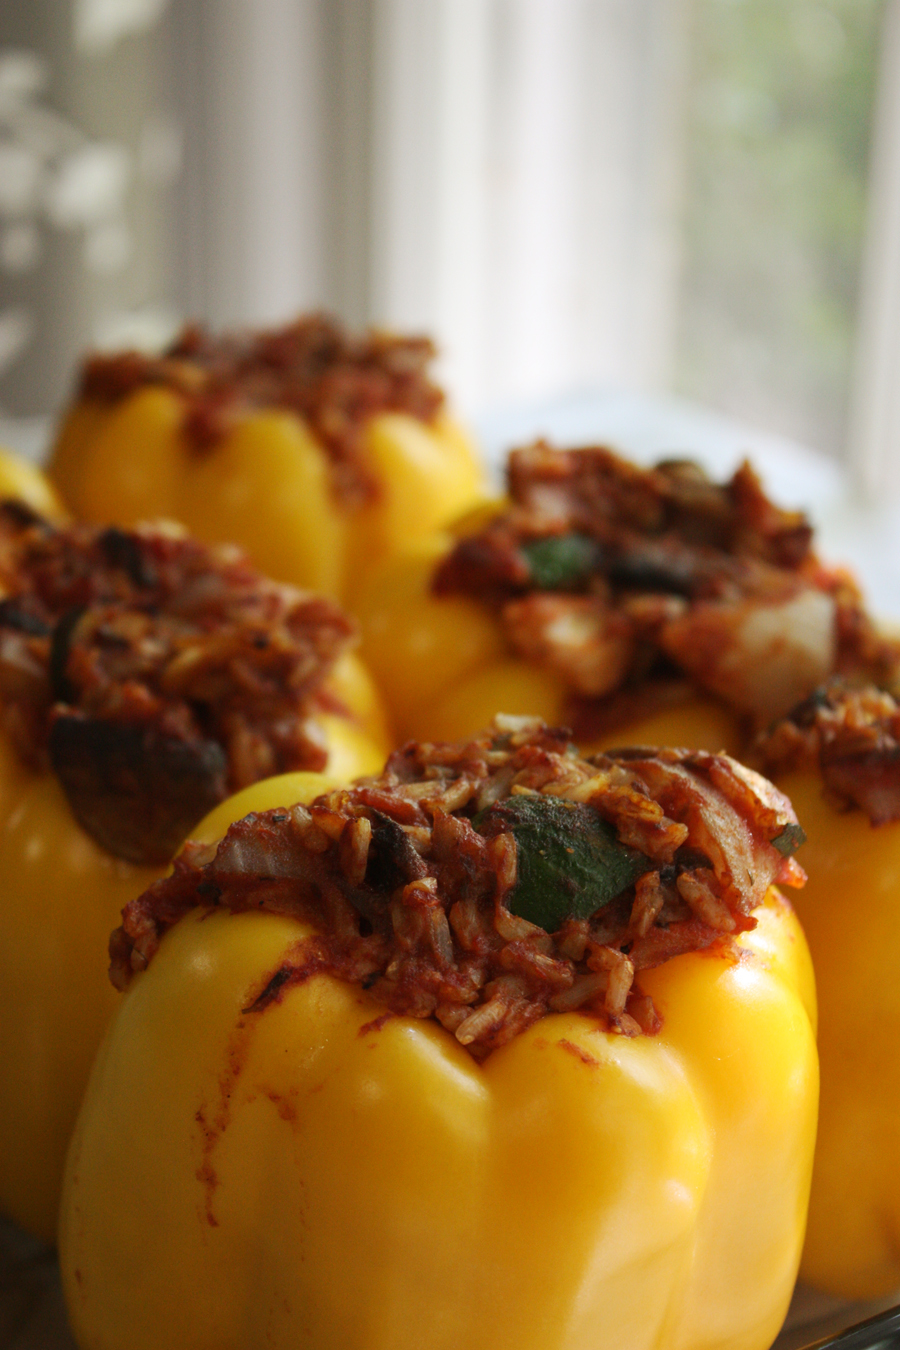 Gluten free and vegan stuffed bell peppers: yummy stuffed bell peppers that are delicious, nutrient dense, and easy to make! Definitely one to make again for the family! | Stay gold Autumn